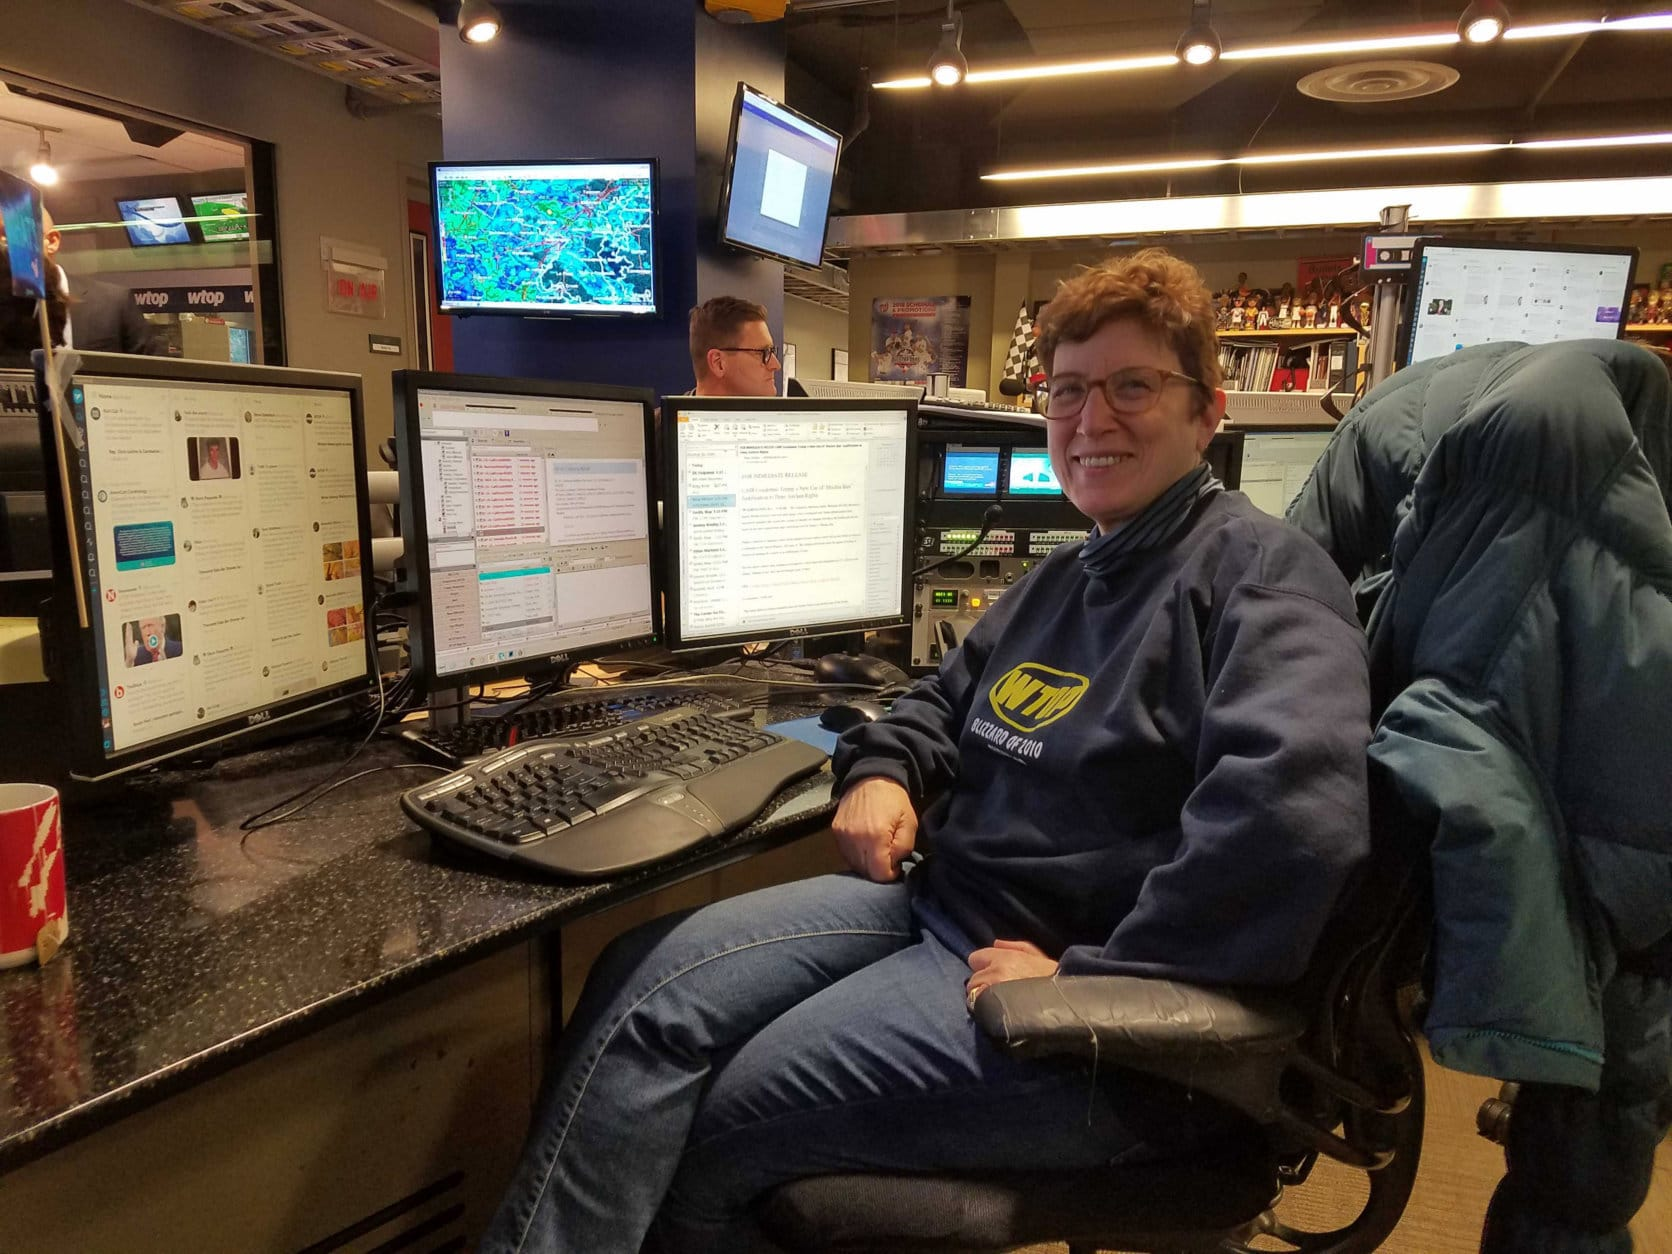 Judy Taub is in control, leading WTOP's coverage of everything from news to sports to weather and traffic. (WTOP/Will Vitka)